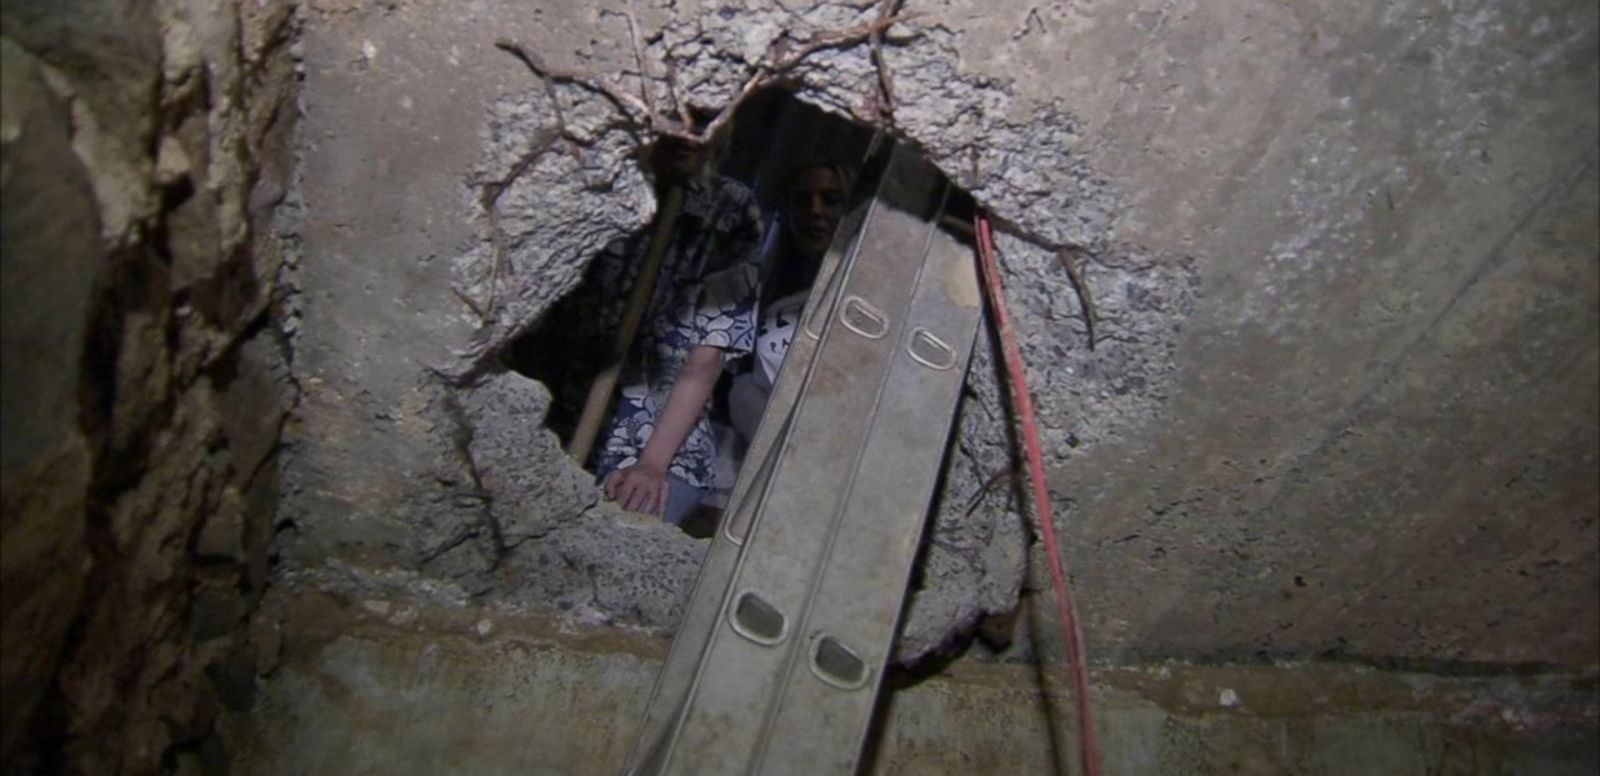 VIDEO: Homeowner Finds Secret Room That May Be Part of Underground Railroad